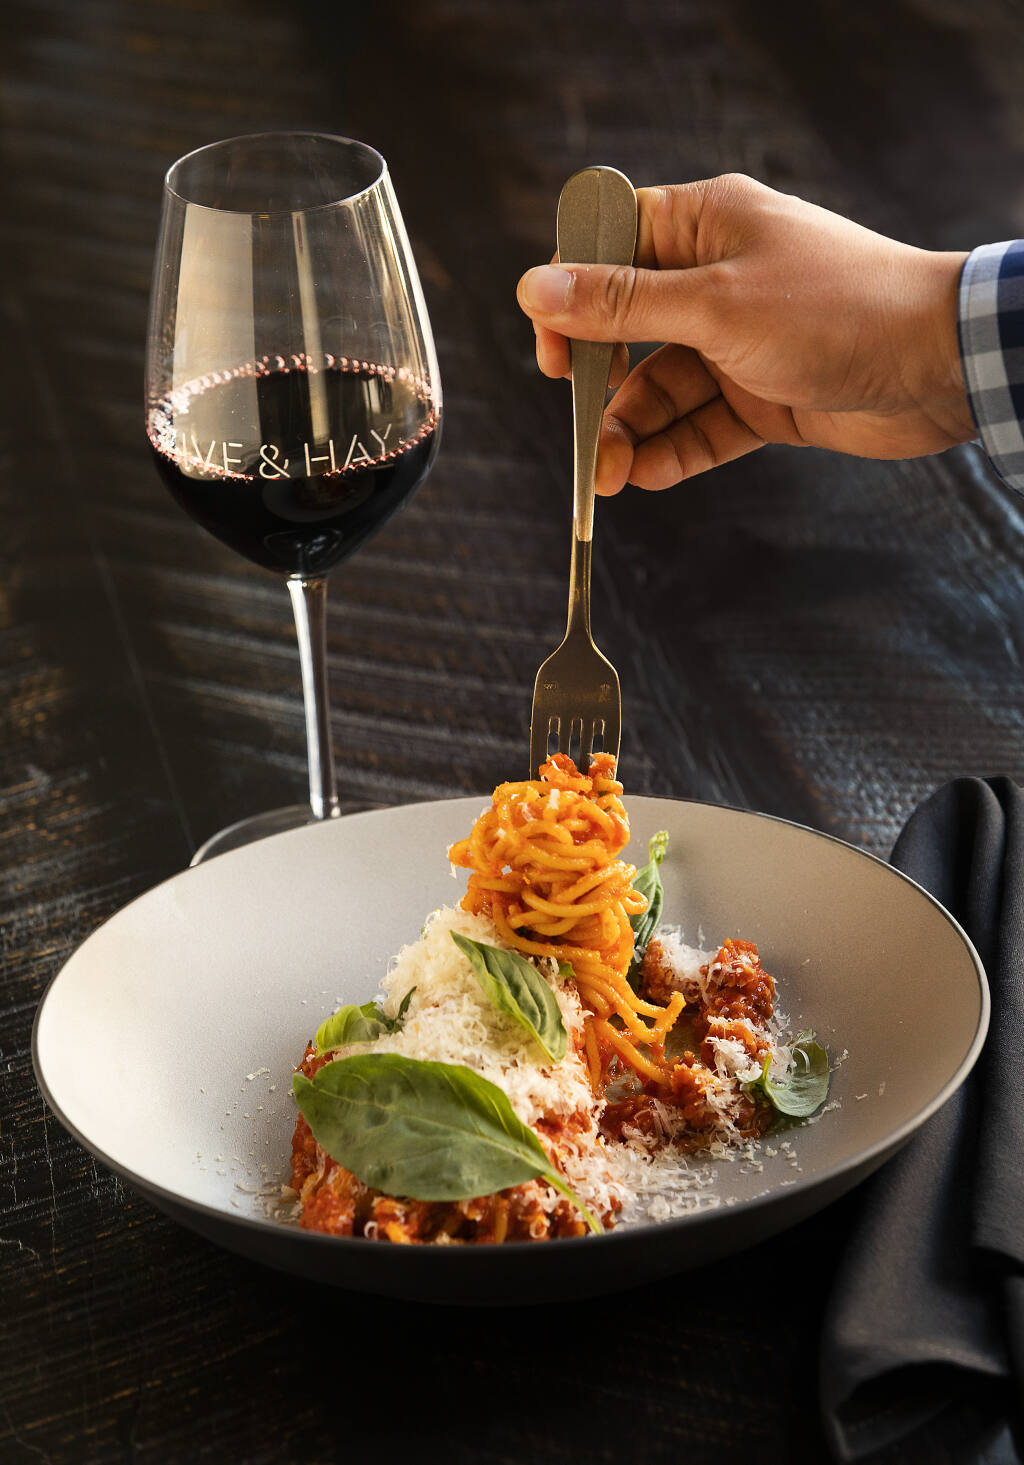 Spaghetti with house made calabrese sausage,tomato conserva and mozzarella from Olive & Hay in the Meritage Resort and Spa in Napa. (John Burgess/The Press Democrat)